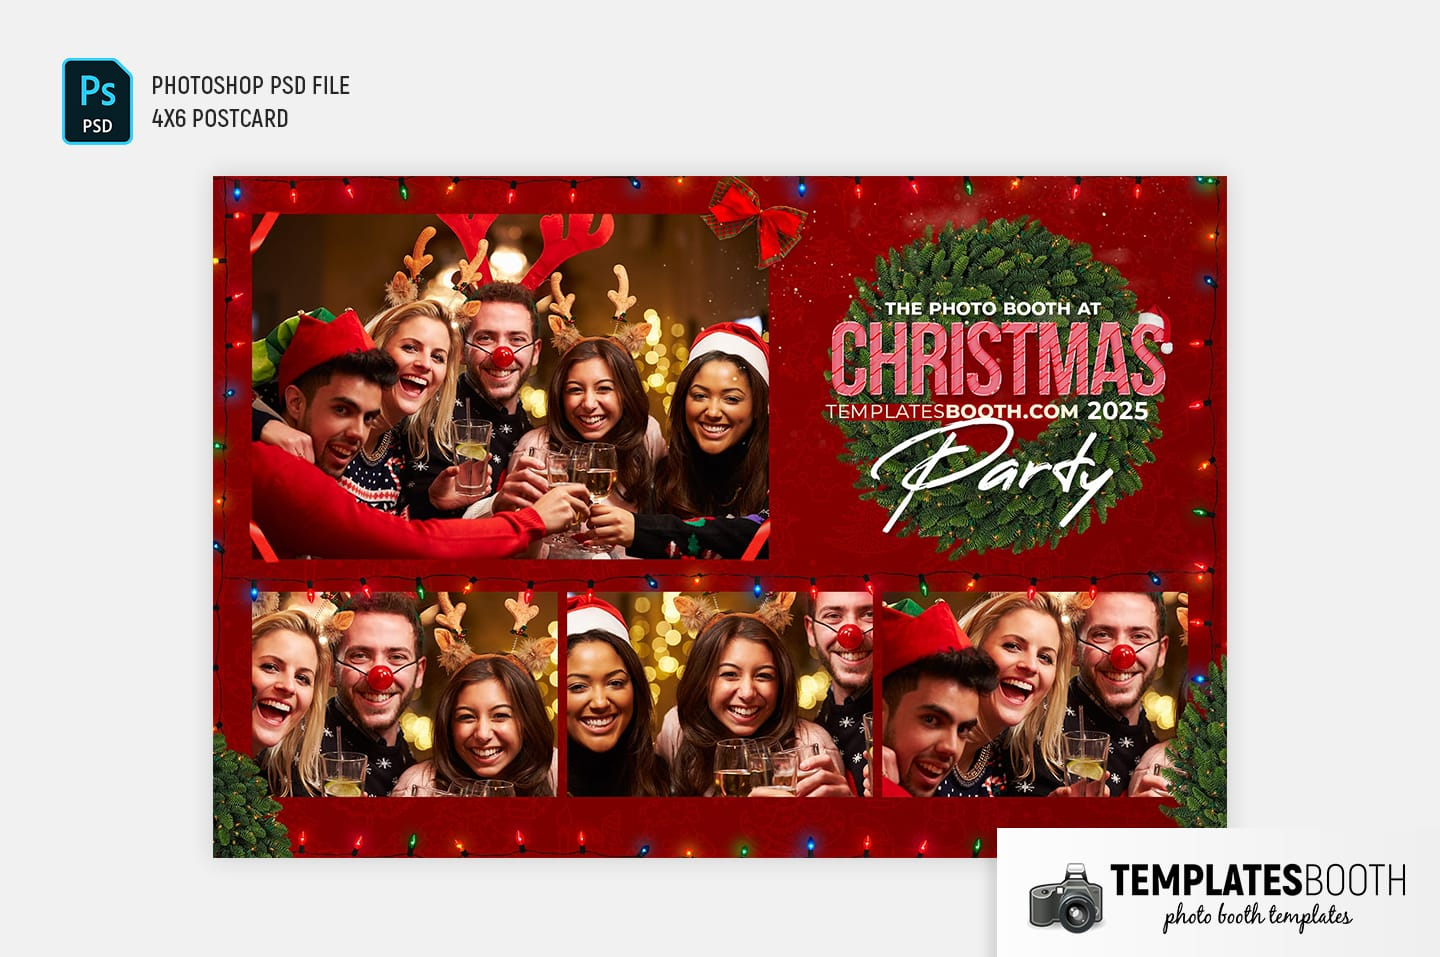 Christmas Party Photo Booth Template (4x6 Postcard Landscape)